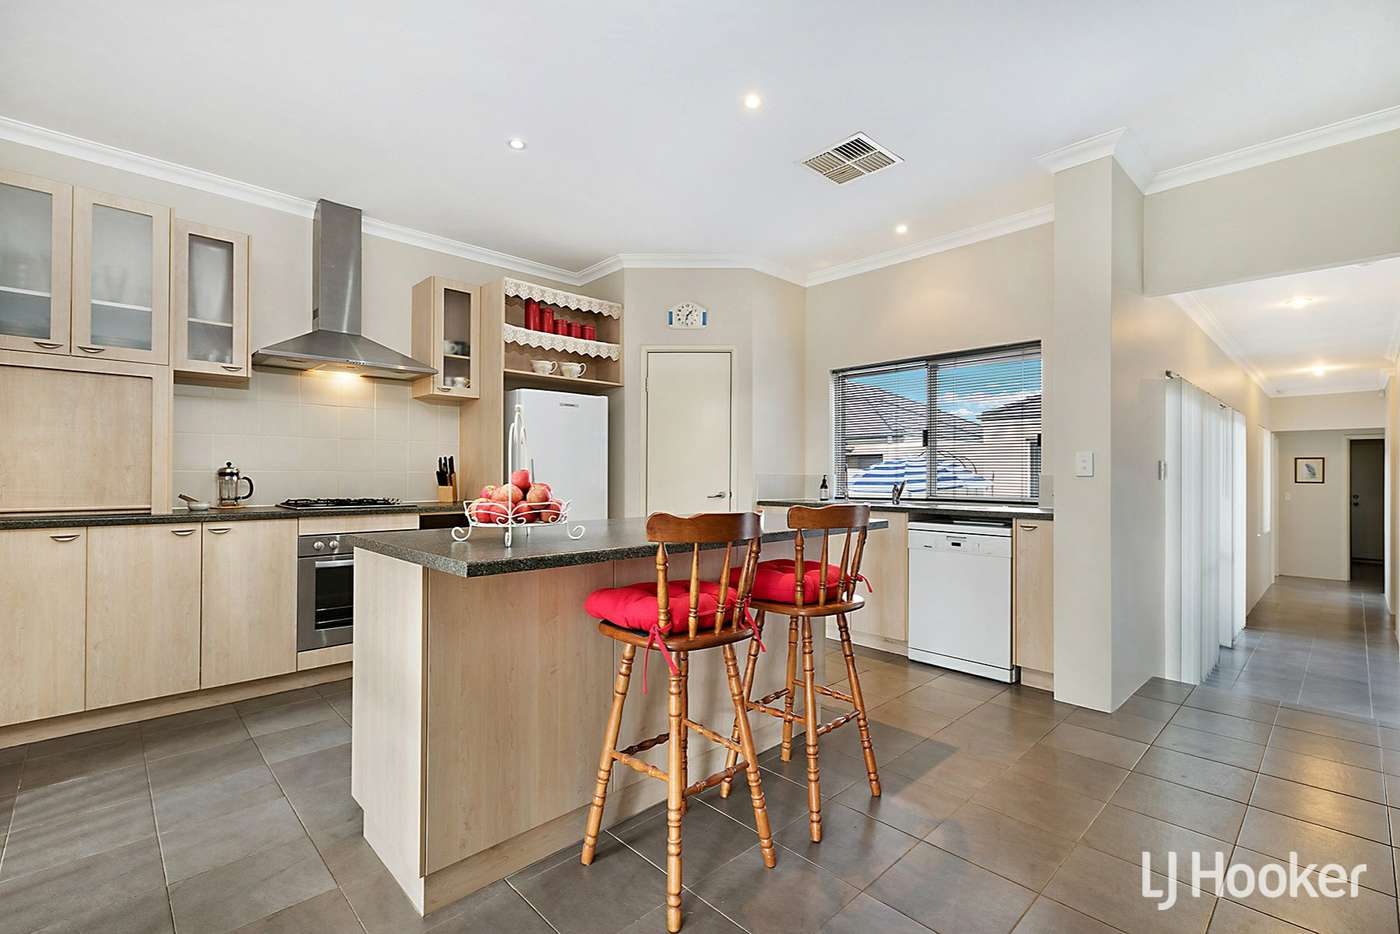 Sixth view of Homely house listing, 16 Wagtail Link, Beeliar WA 6164